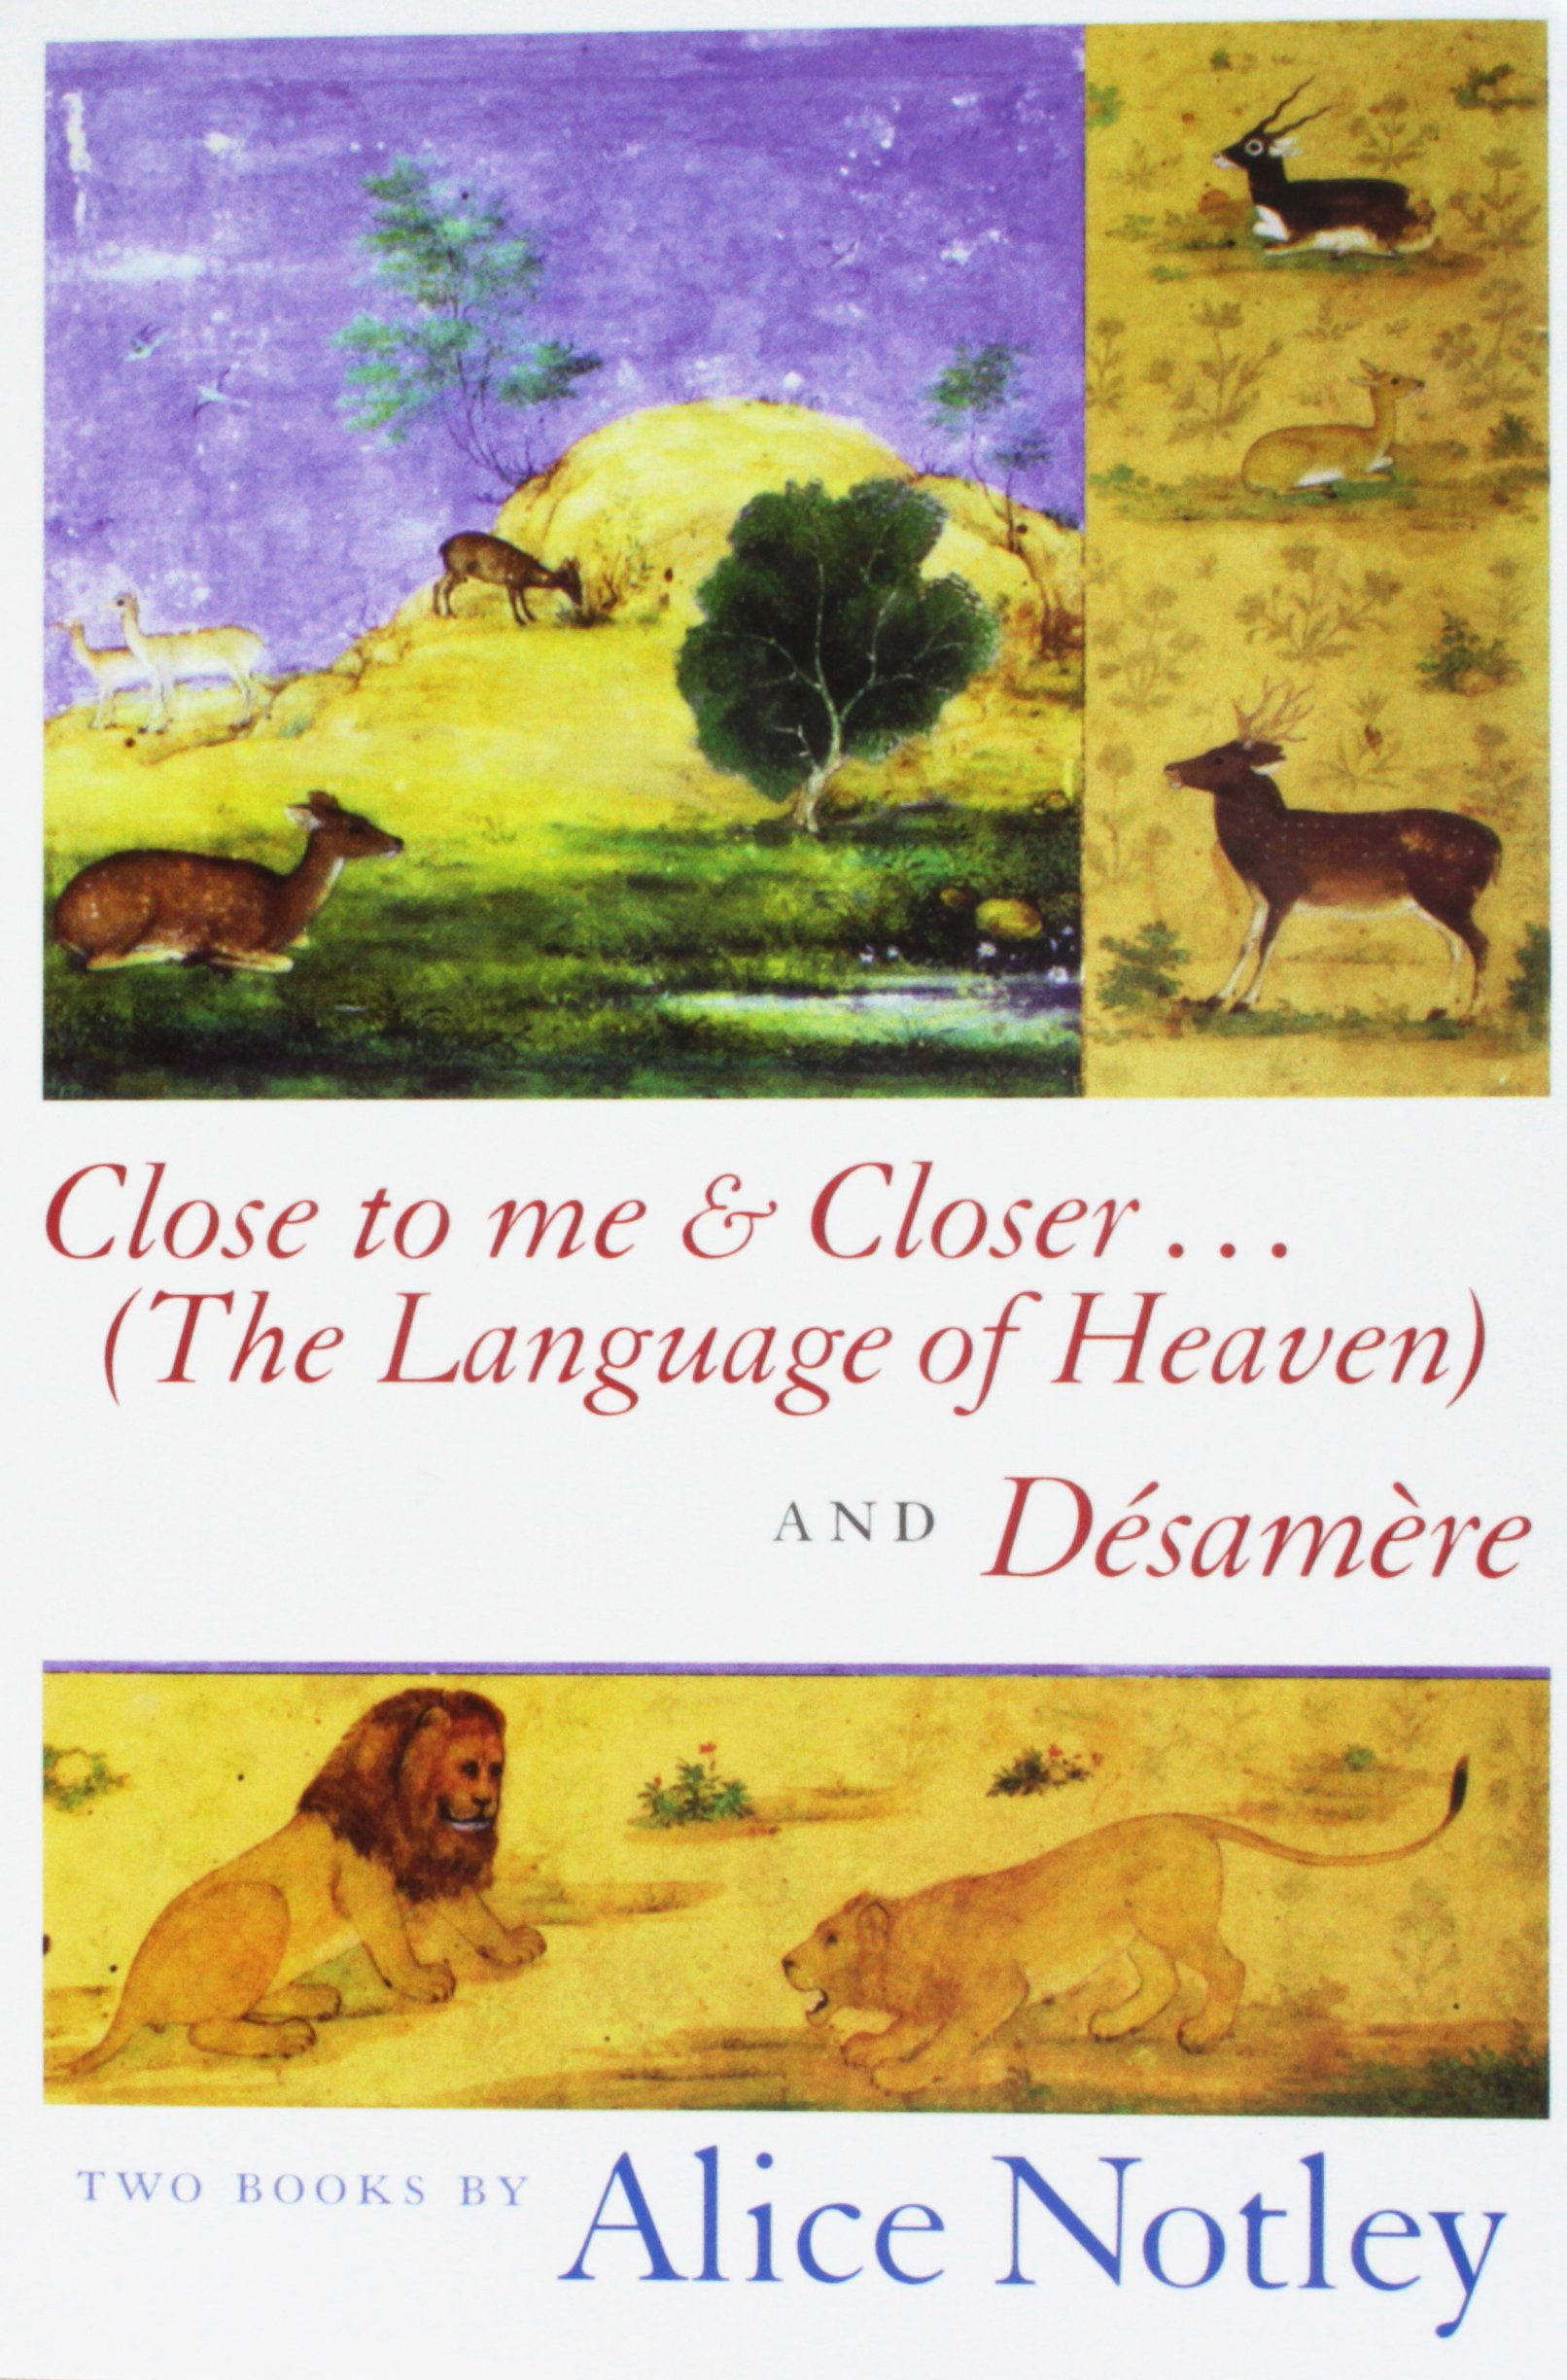 Close to Me & Closer...(The Language of Heaven) and Desamere